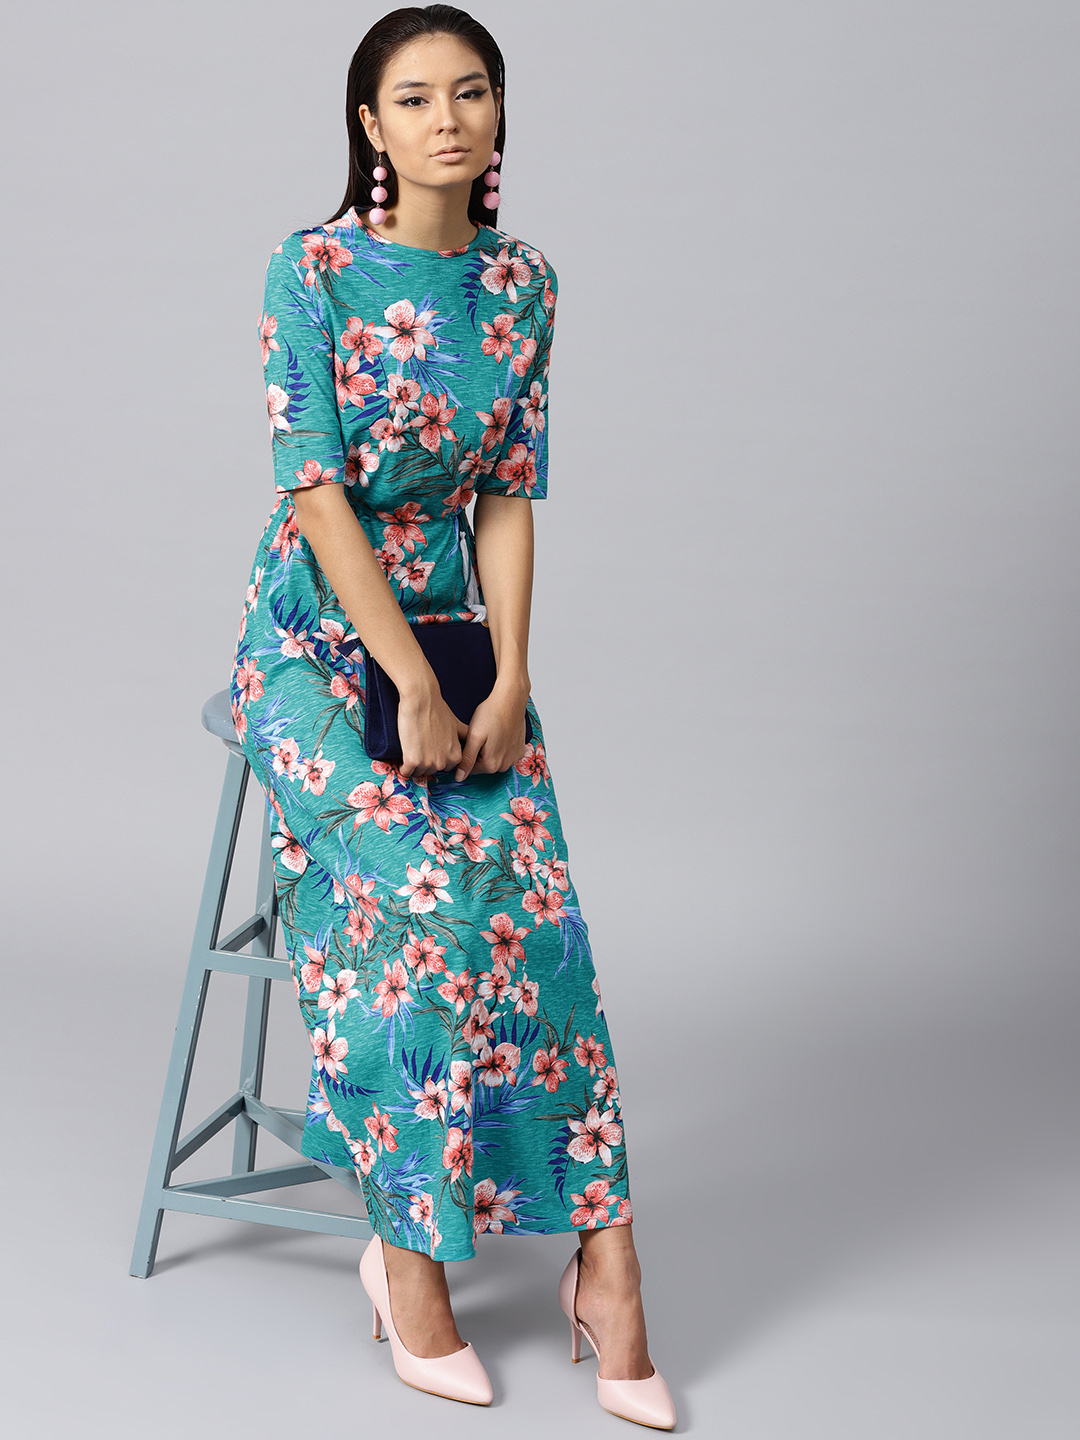 SASSAFRAS Women Turquoise Blue Floral Print Maxi Dress Price in India